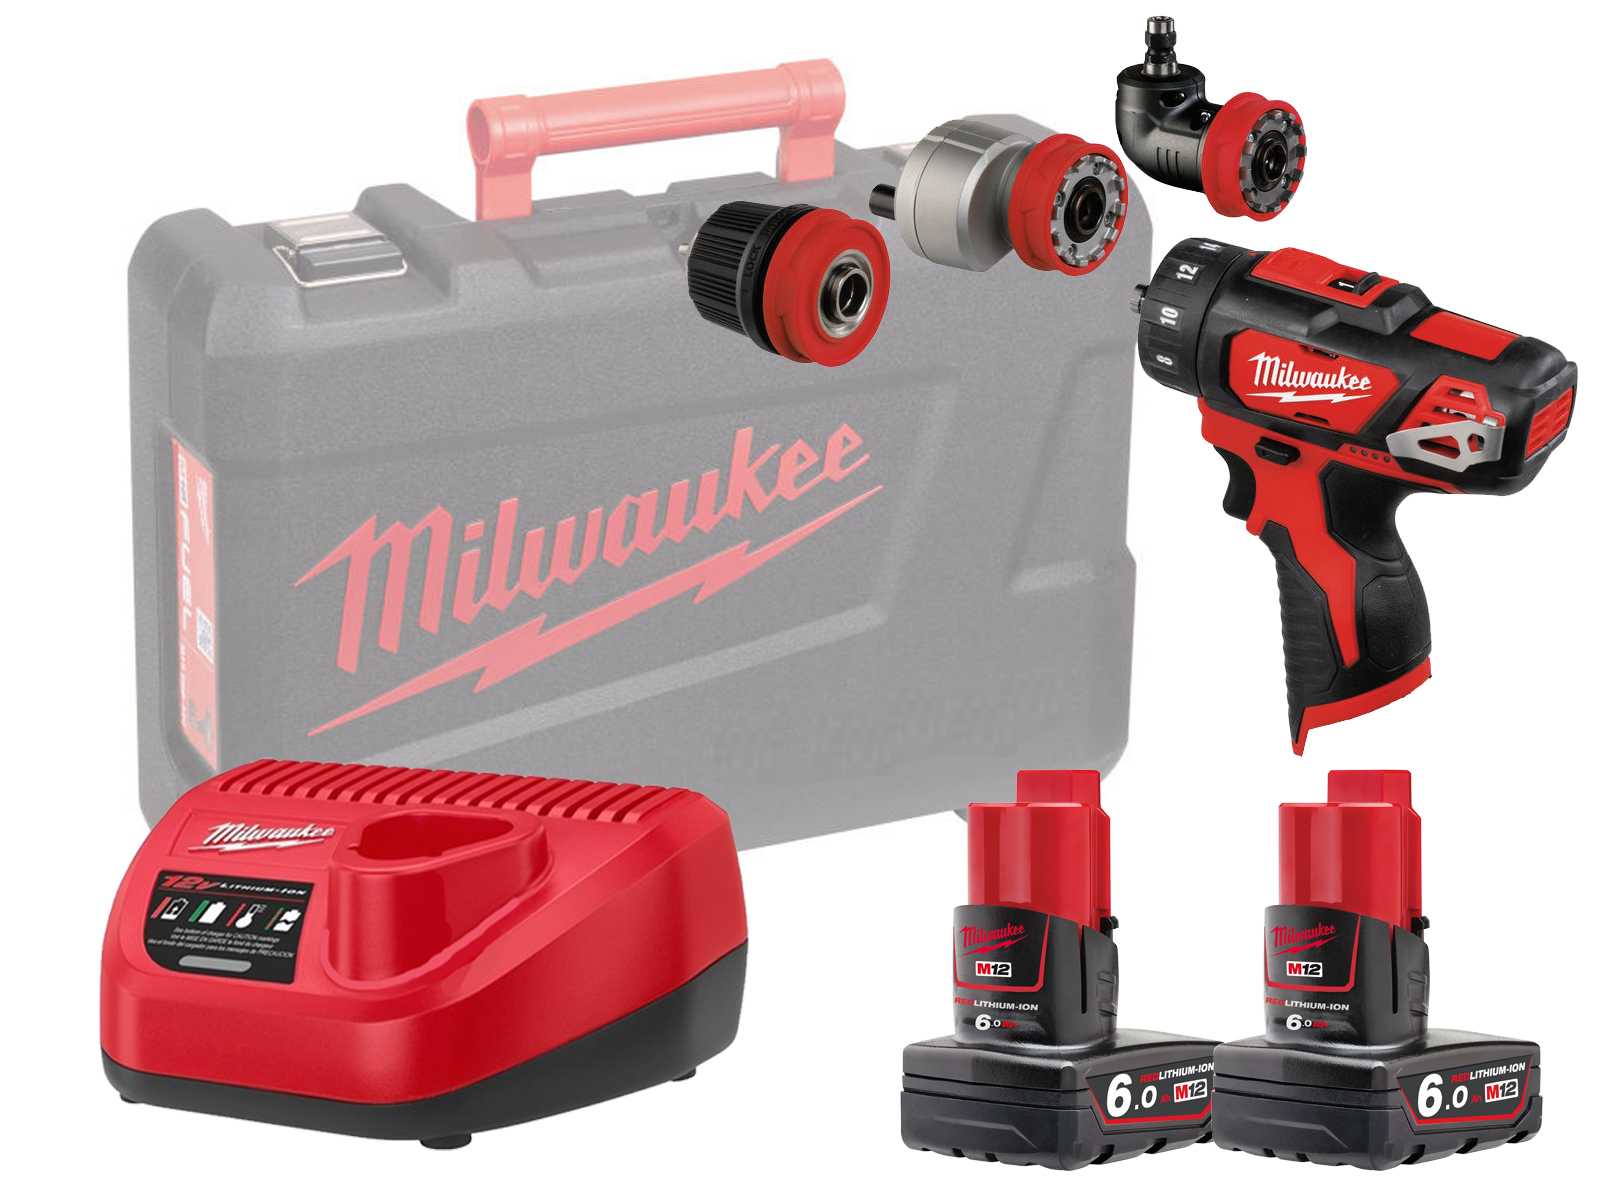 MILWAUKEE 12V DRILL / HEX / OFFSET / RIGHT ANGLE - M12BDDXKIT - 6.0AH PACK